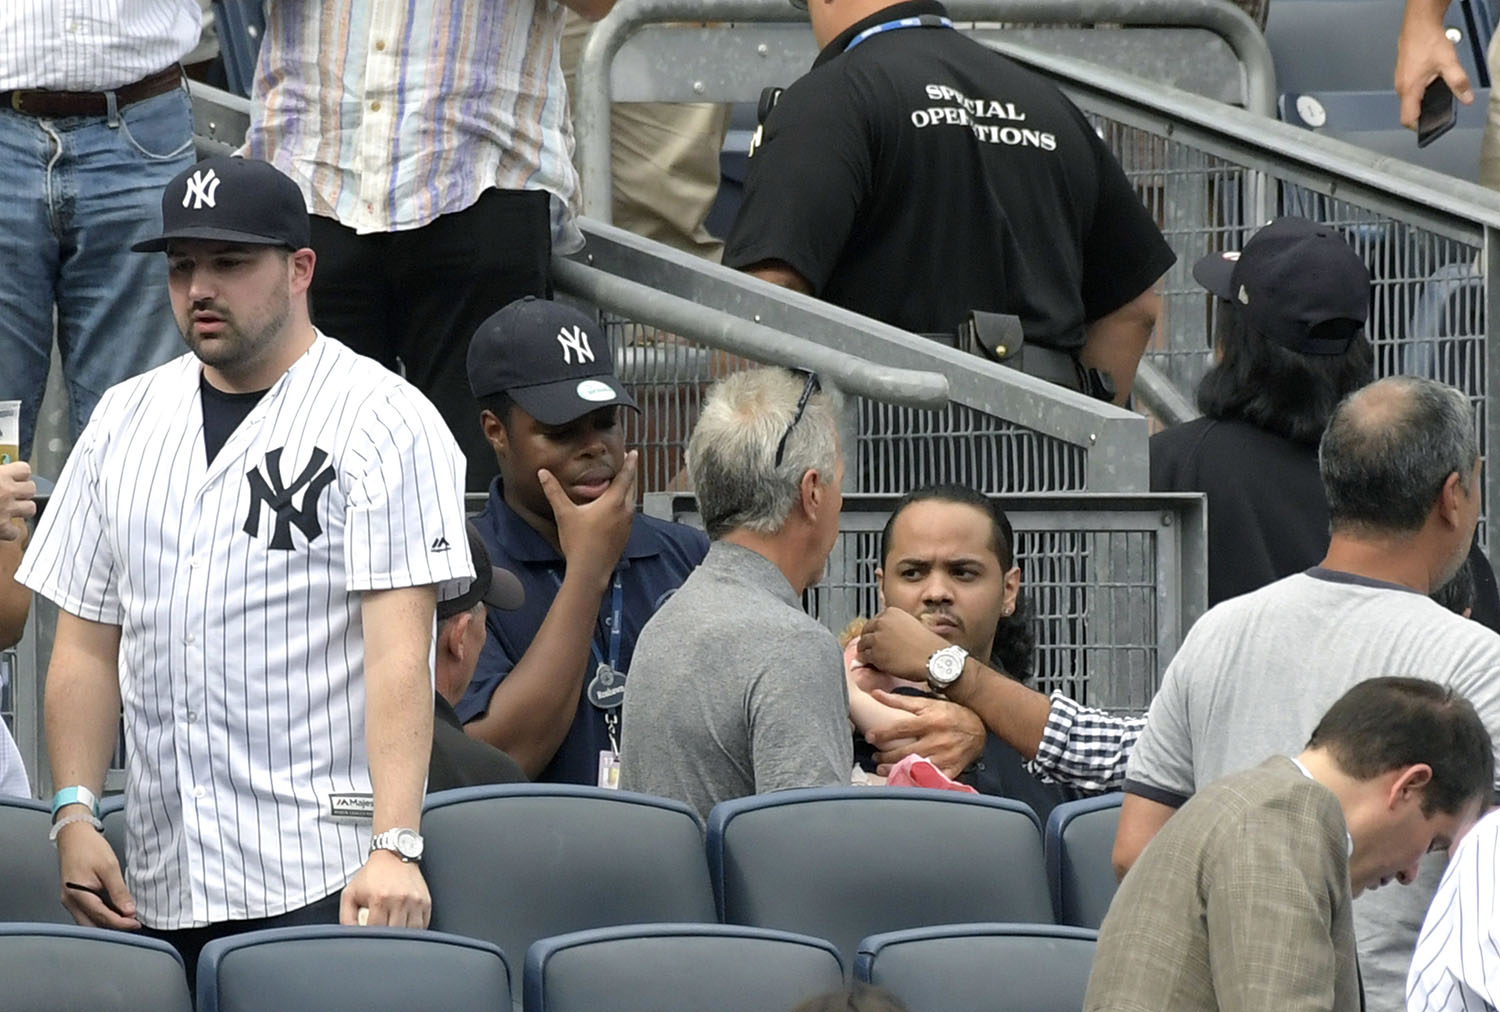 <div class='meta'><div class='origin-logo' data-origin='AP'></div><span class='caption-text' data-credit='AP Photo/Bill Kostroun'>Baseball fans react as a young girl is tended to before she is carried out of the seating area after being hit by a line drive in the fifth inning of a baseball game.</span></div>